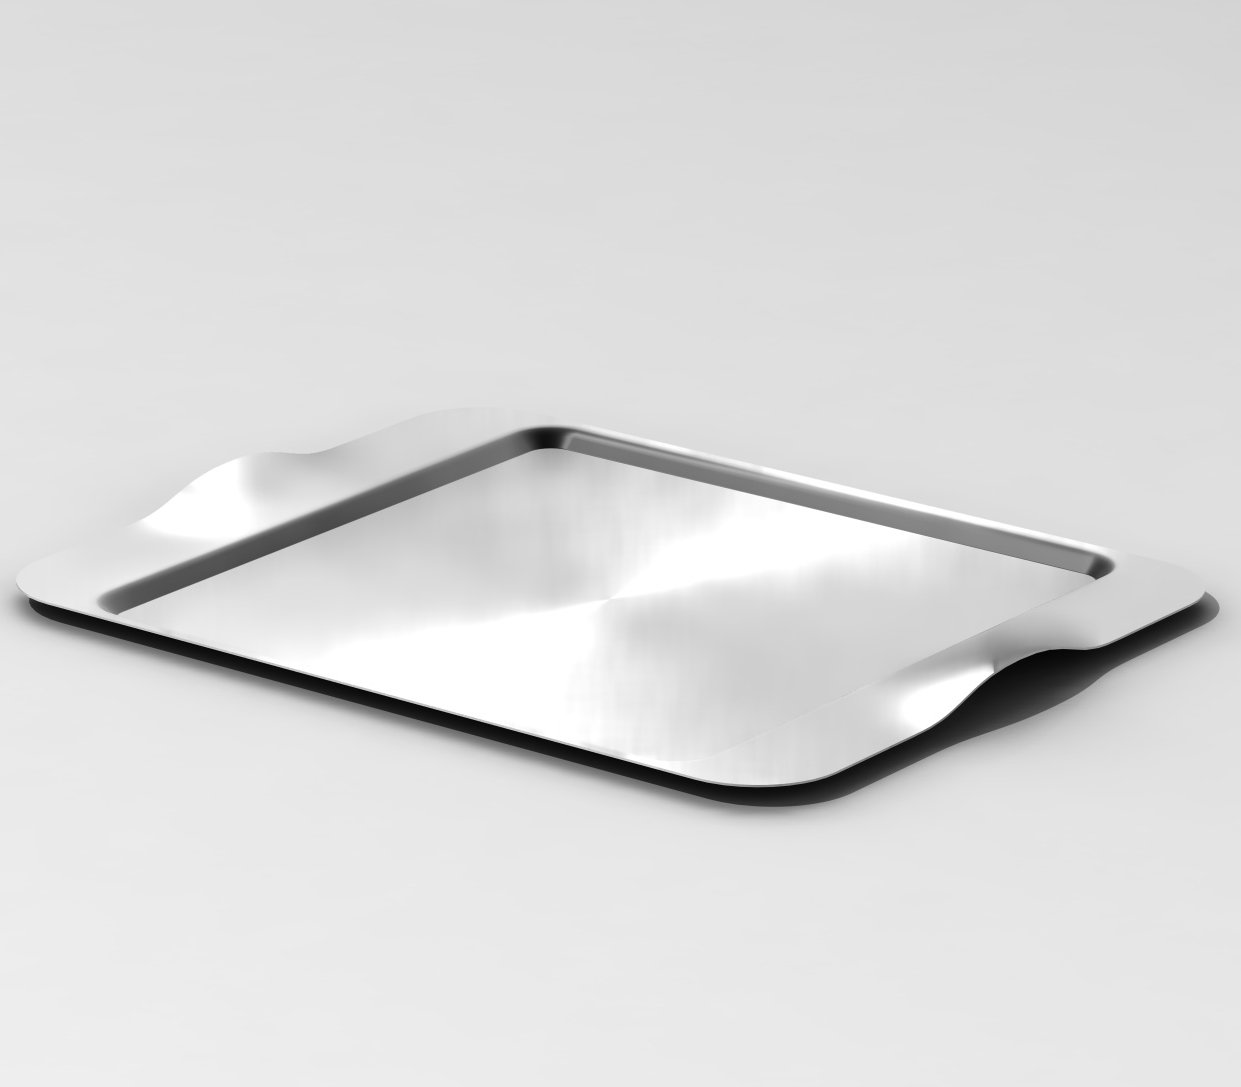 Brushed Stainless Steelforme Mod18 Steelworks SB-43 16 x 13 Rectangular Tray